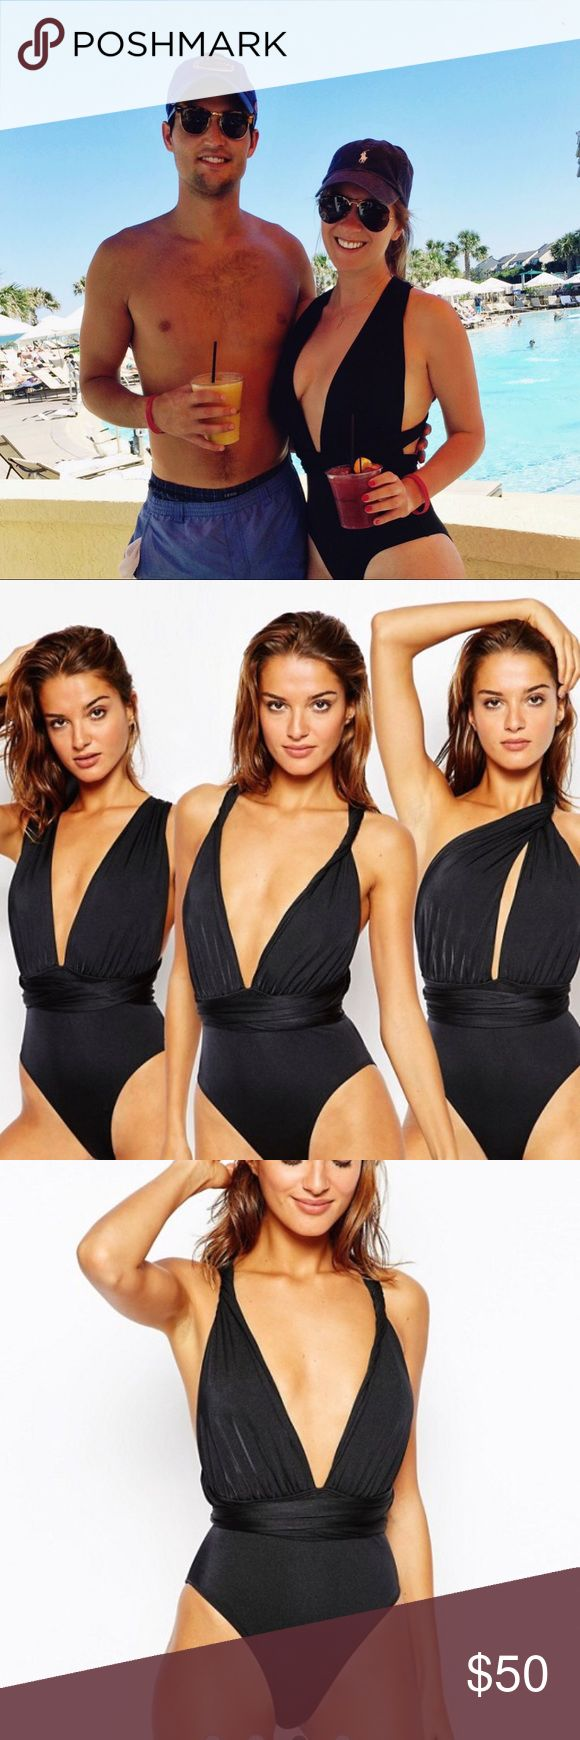 ASOS Multiway Swimsuit- Black ASOS Multiway One Piece Bathing Suit. Very Versatile. Can wear at least 3 different ways. Worn ONCE!!! In Perfect Condition!!! Size AU 4 but fits like an American Size 0 to 2. ASOS Swim One Pieces